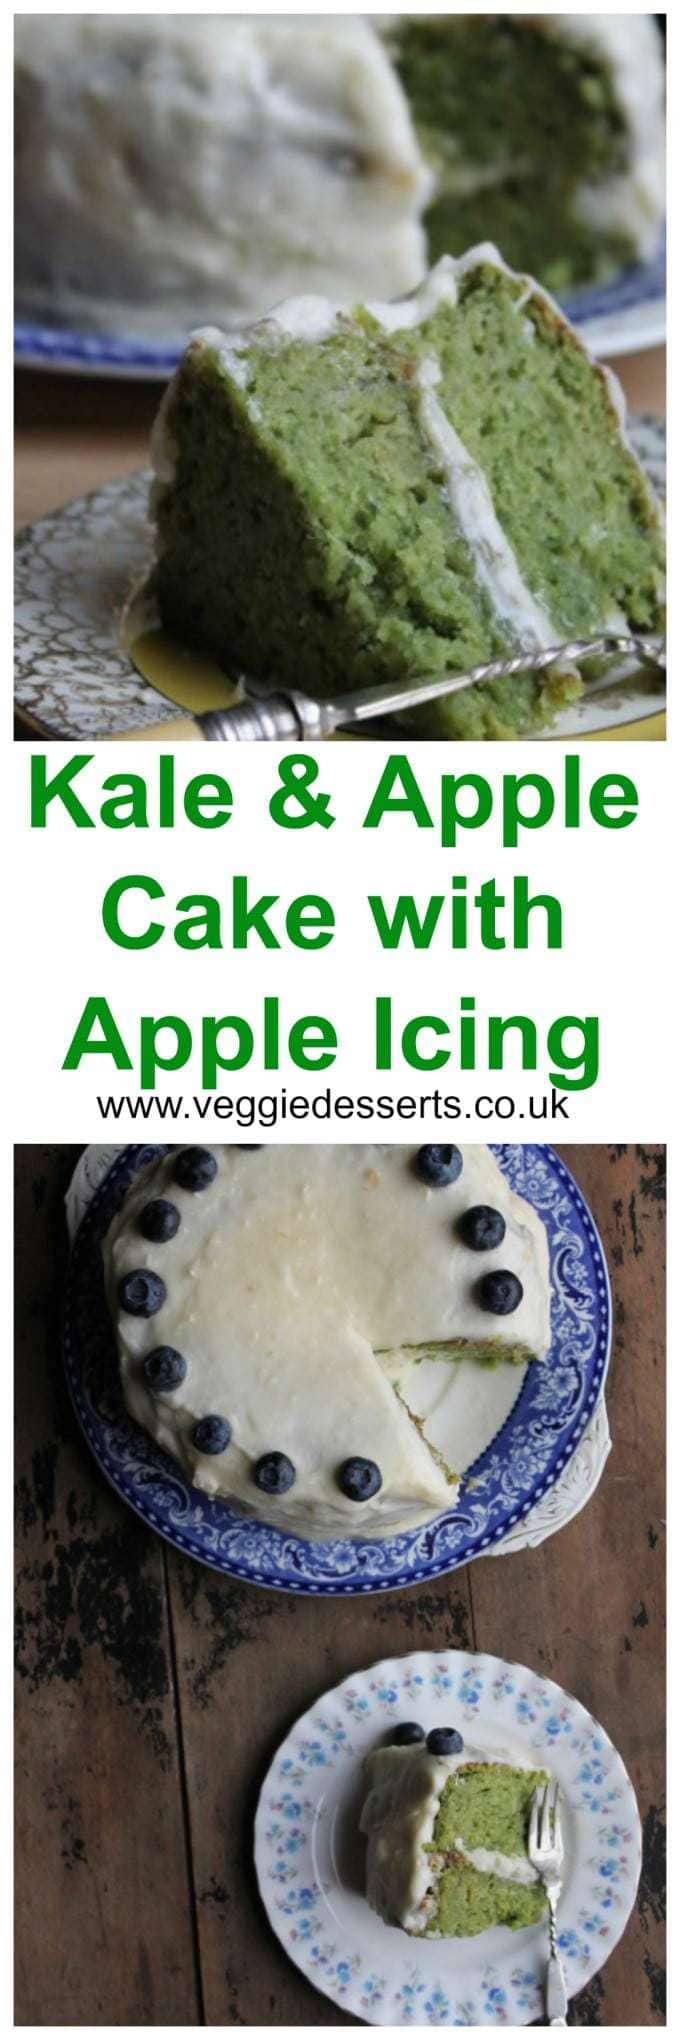 This Apple Kale Cake has a delicate apple-flavoured sponge, topped with a zesty apple icing and, although there is quite a bit of kale, the flavour doesn't overpower the other ingredients. #kalecake #vegetabledessert #vegetablecake #kale